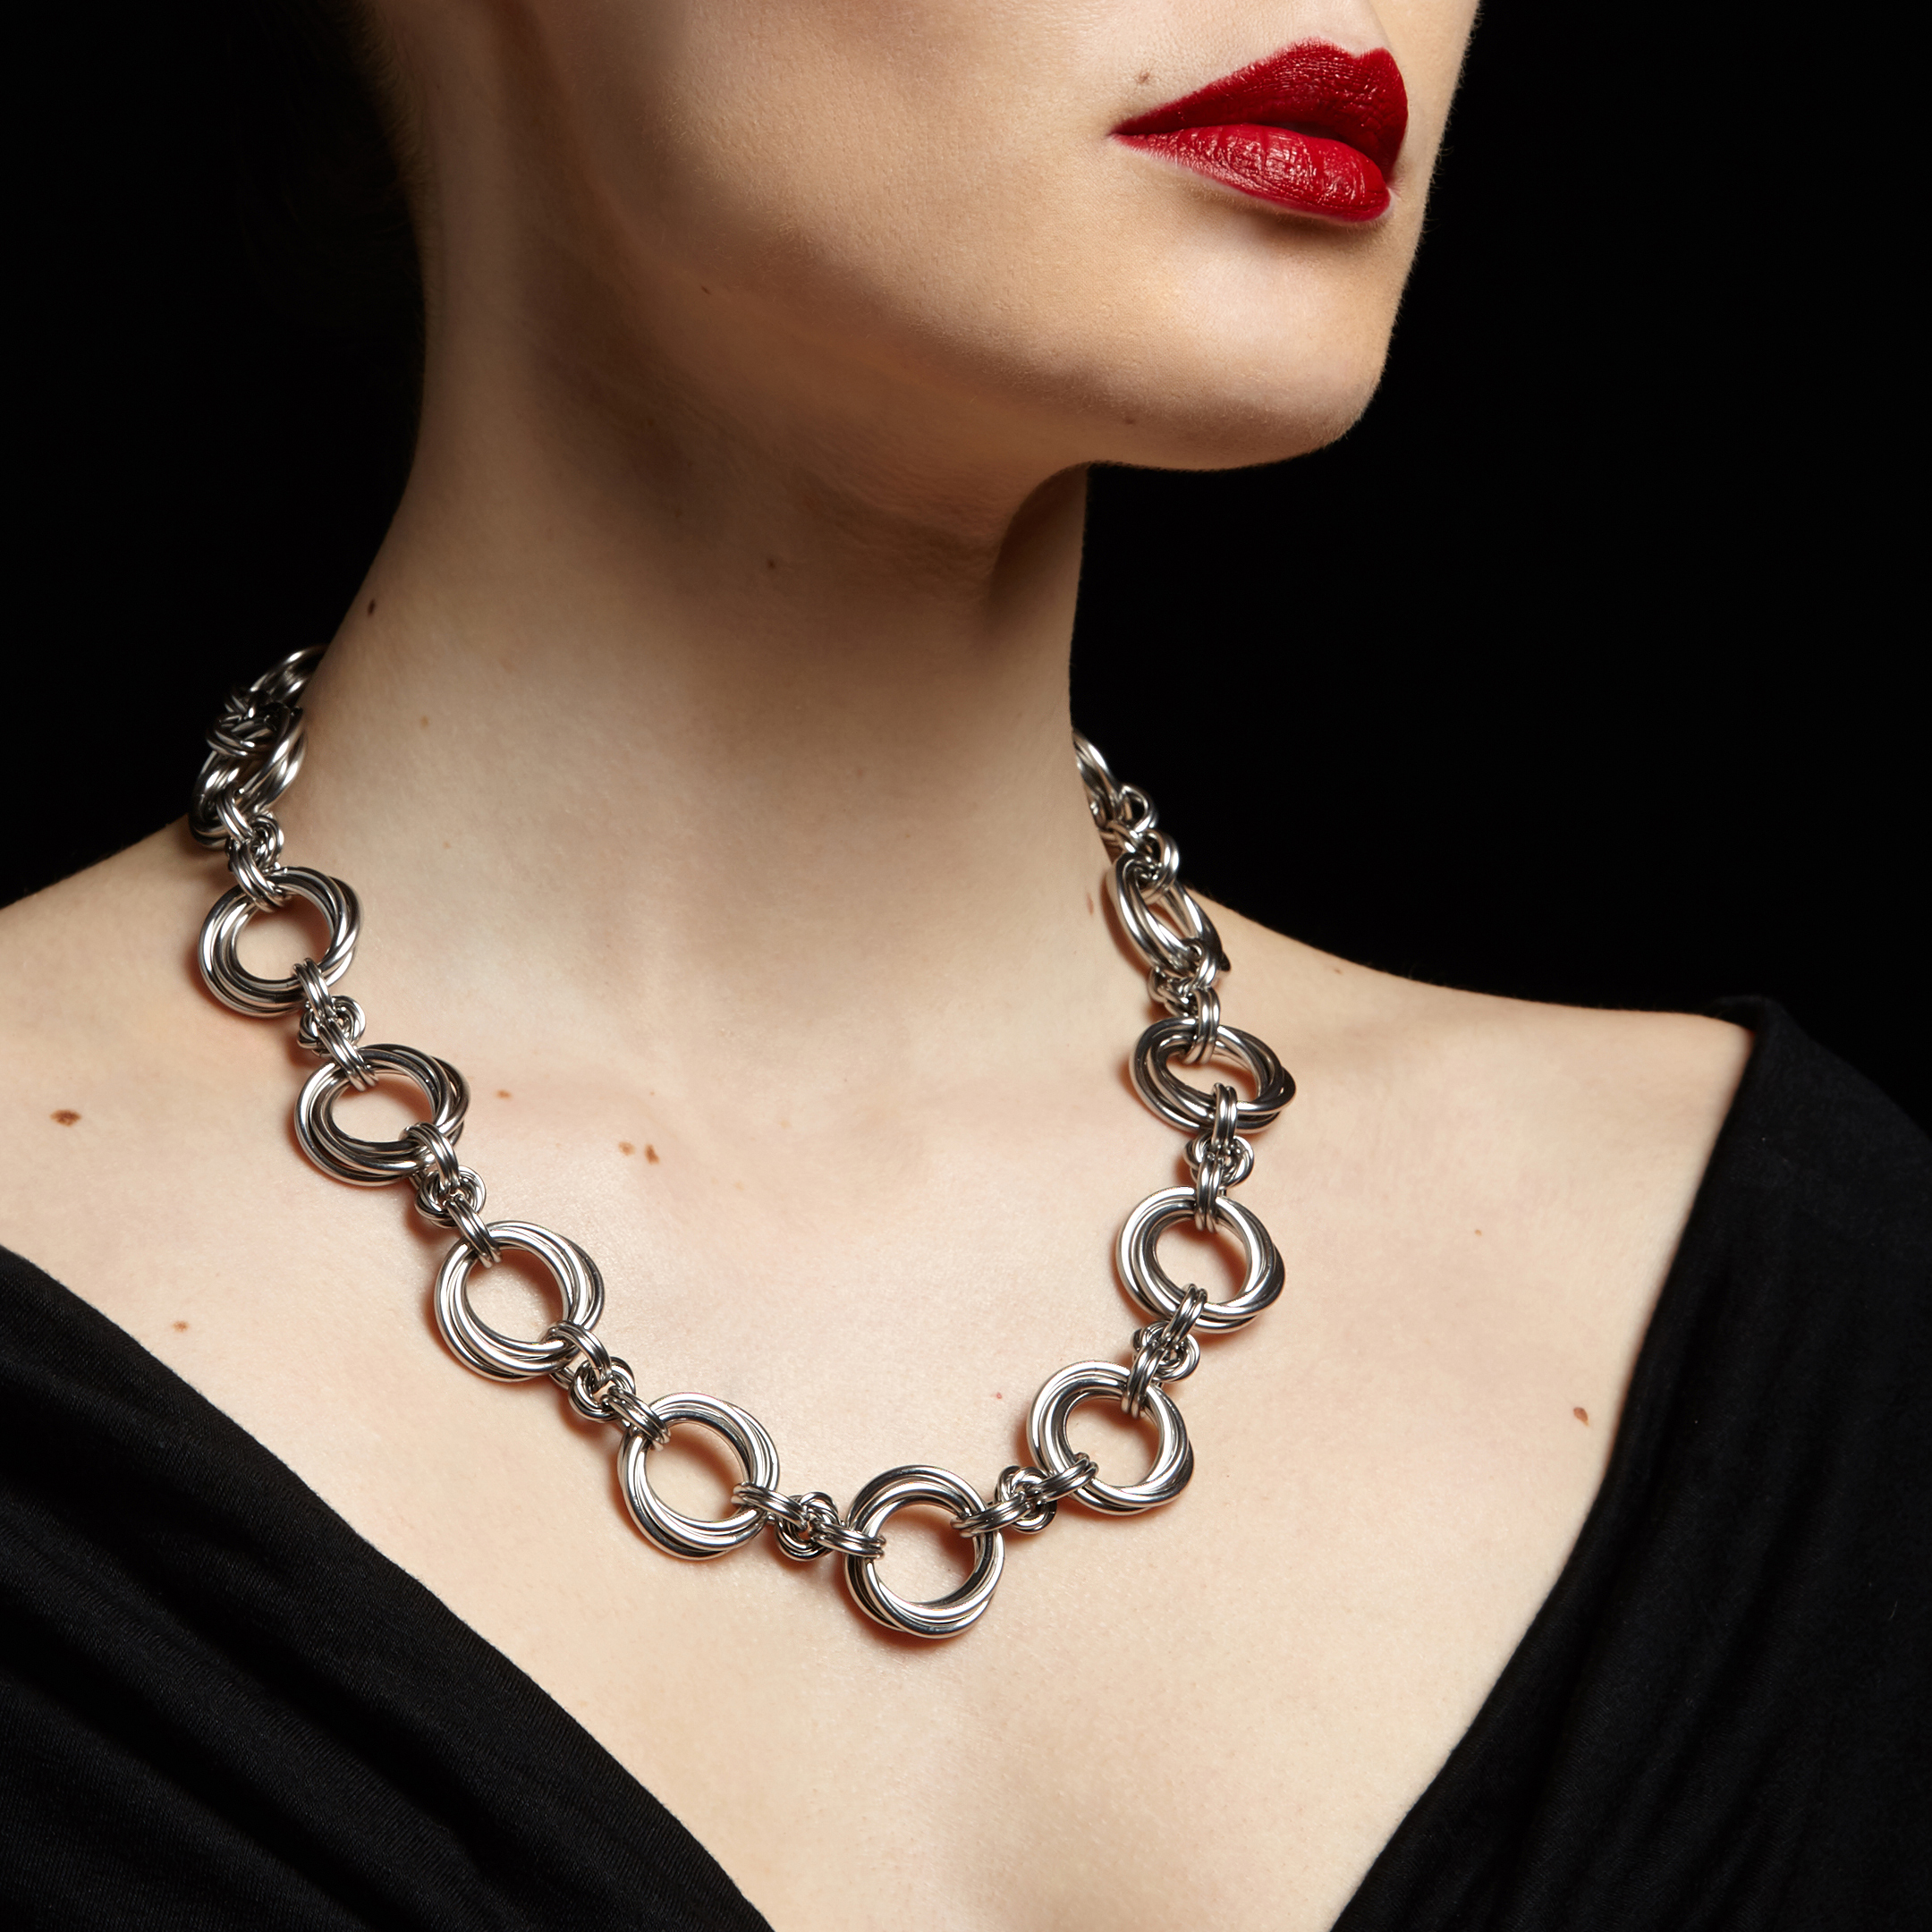 Rapt in Maille   My stainless steel jewelry combines traditional patterns of chainmaille with contemporary decorative elements and a modern, urban design sensibility. A significant focus of my work lies in the provocative integration of masculine vs. feminine. I build the chainmaille by opening and closing individual links to weave them together in a specific pattern. If a piece has any length of chain in the design, each chain is painstakingly measured and cut so that the design lays properly on the wearer, with placement, weight, and gravity playing a major role. – Melissa Banks  Website:  http://www.raptinmaille.com